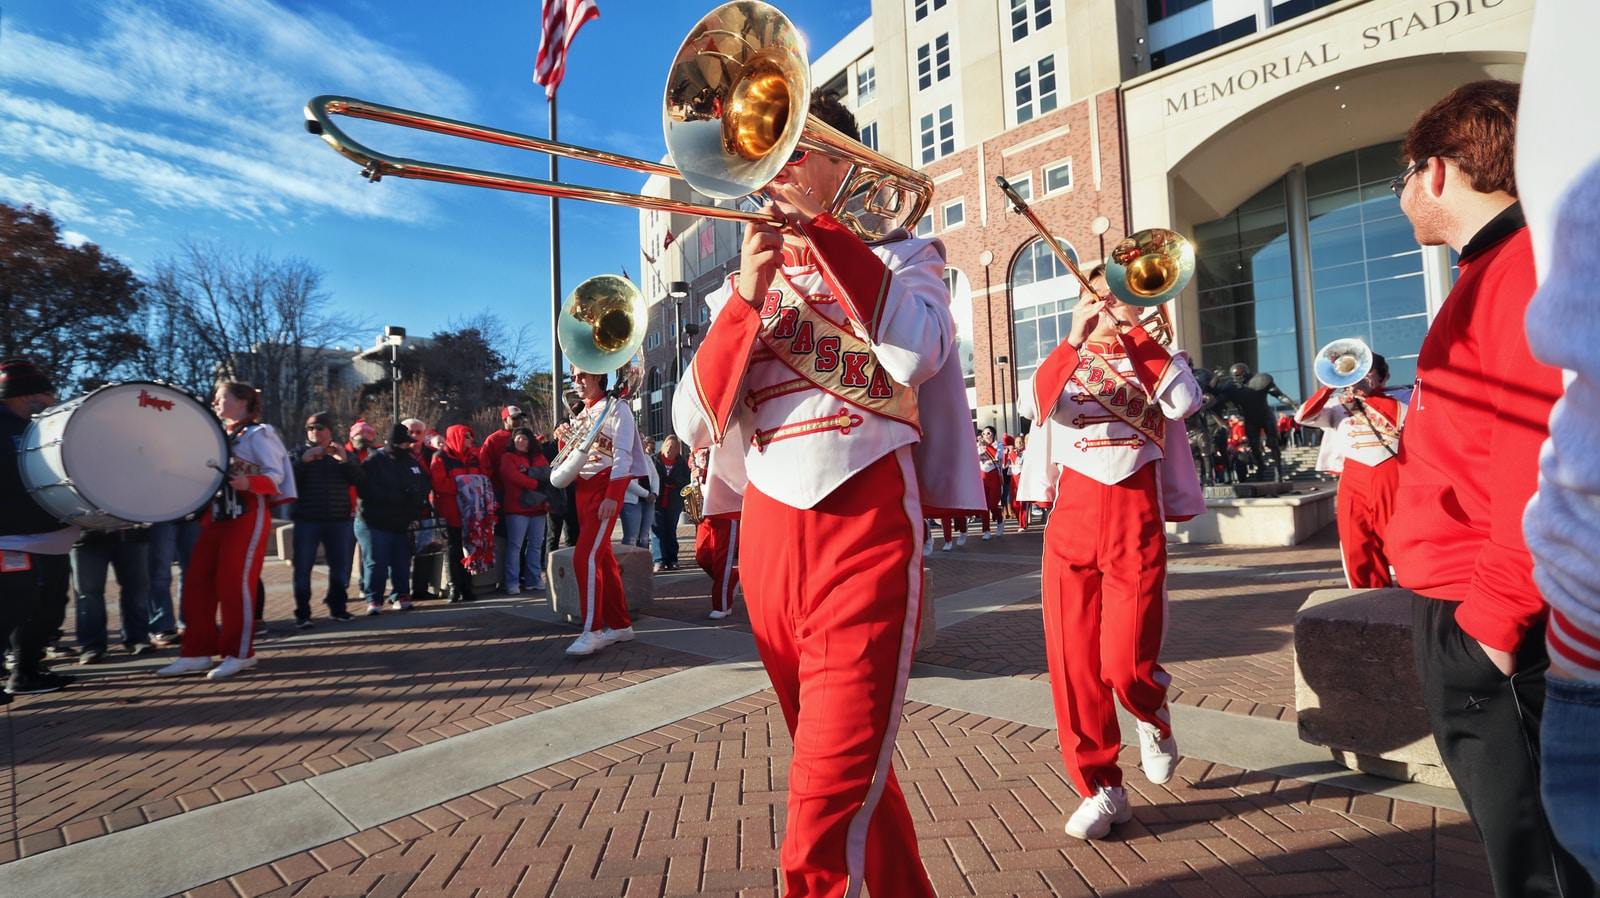 people in red and white uniform playing musical instruments on street during daytime